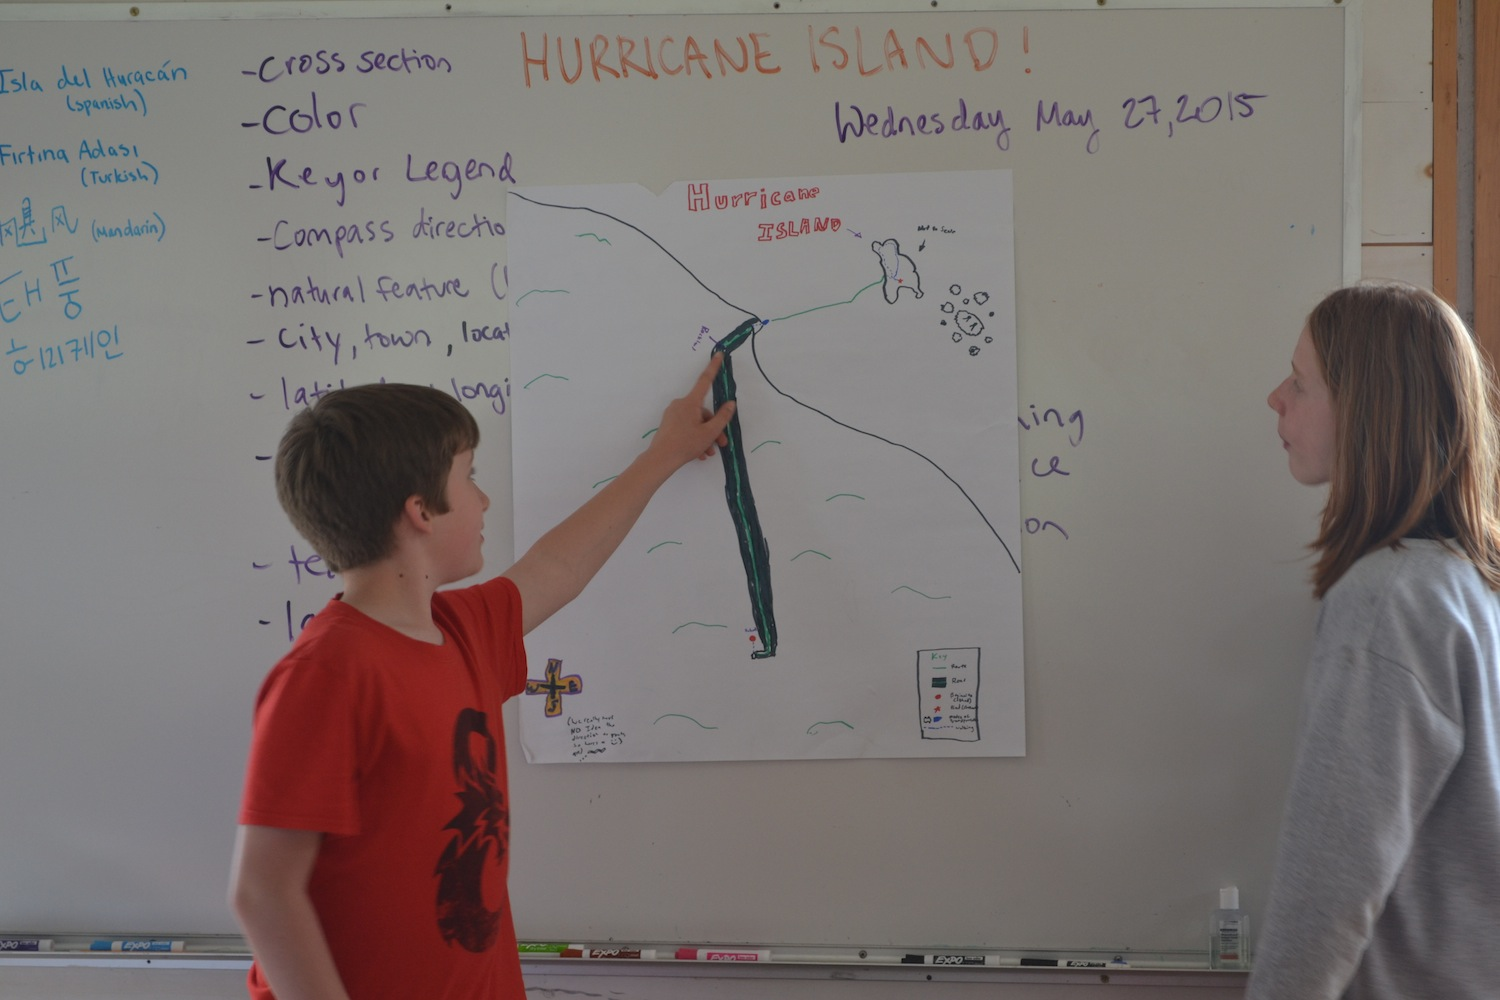 Students share creative maps they drew showing their journey to Hurricane Island